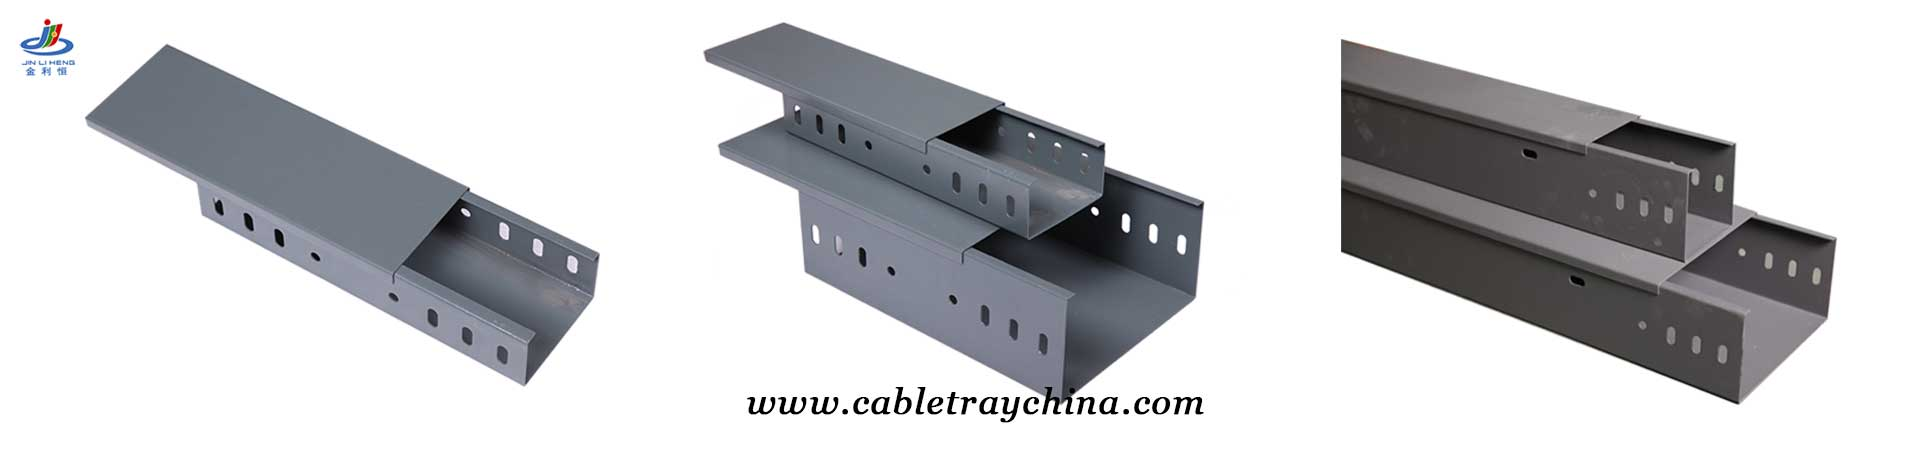 Powder Coated Galvanised Cable Trunking Products